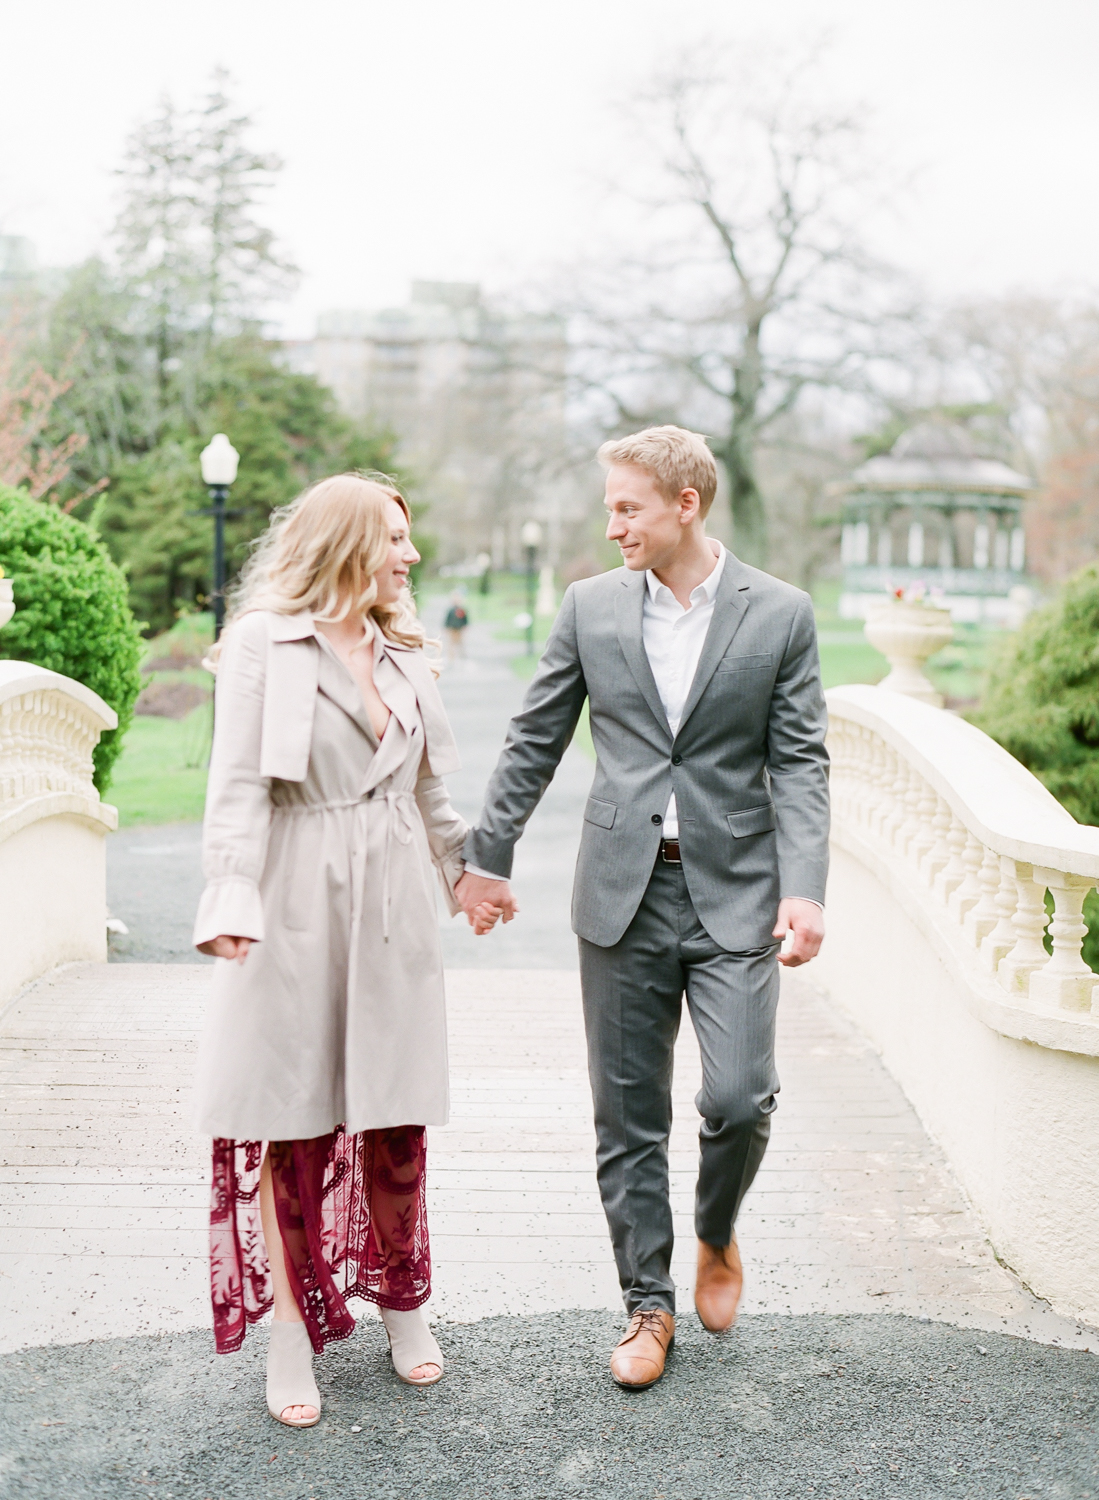 Jacqueline Anne Photography - Amanda and Brent-44.jpg